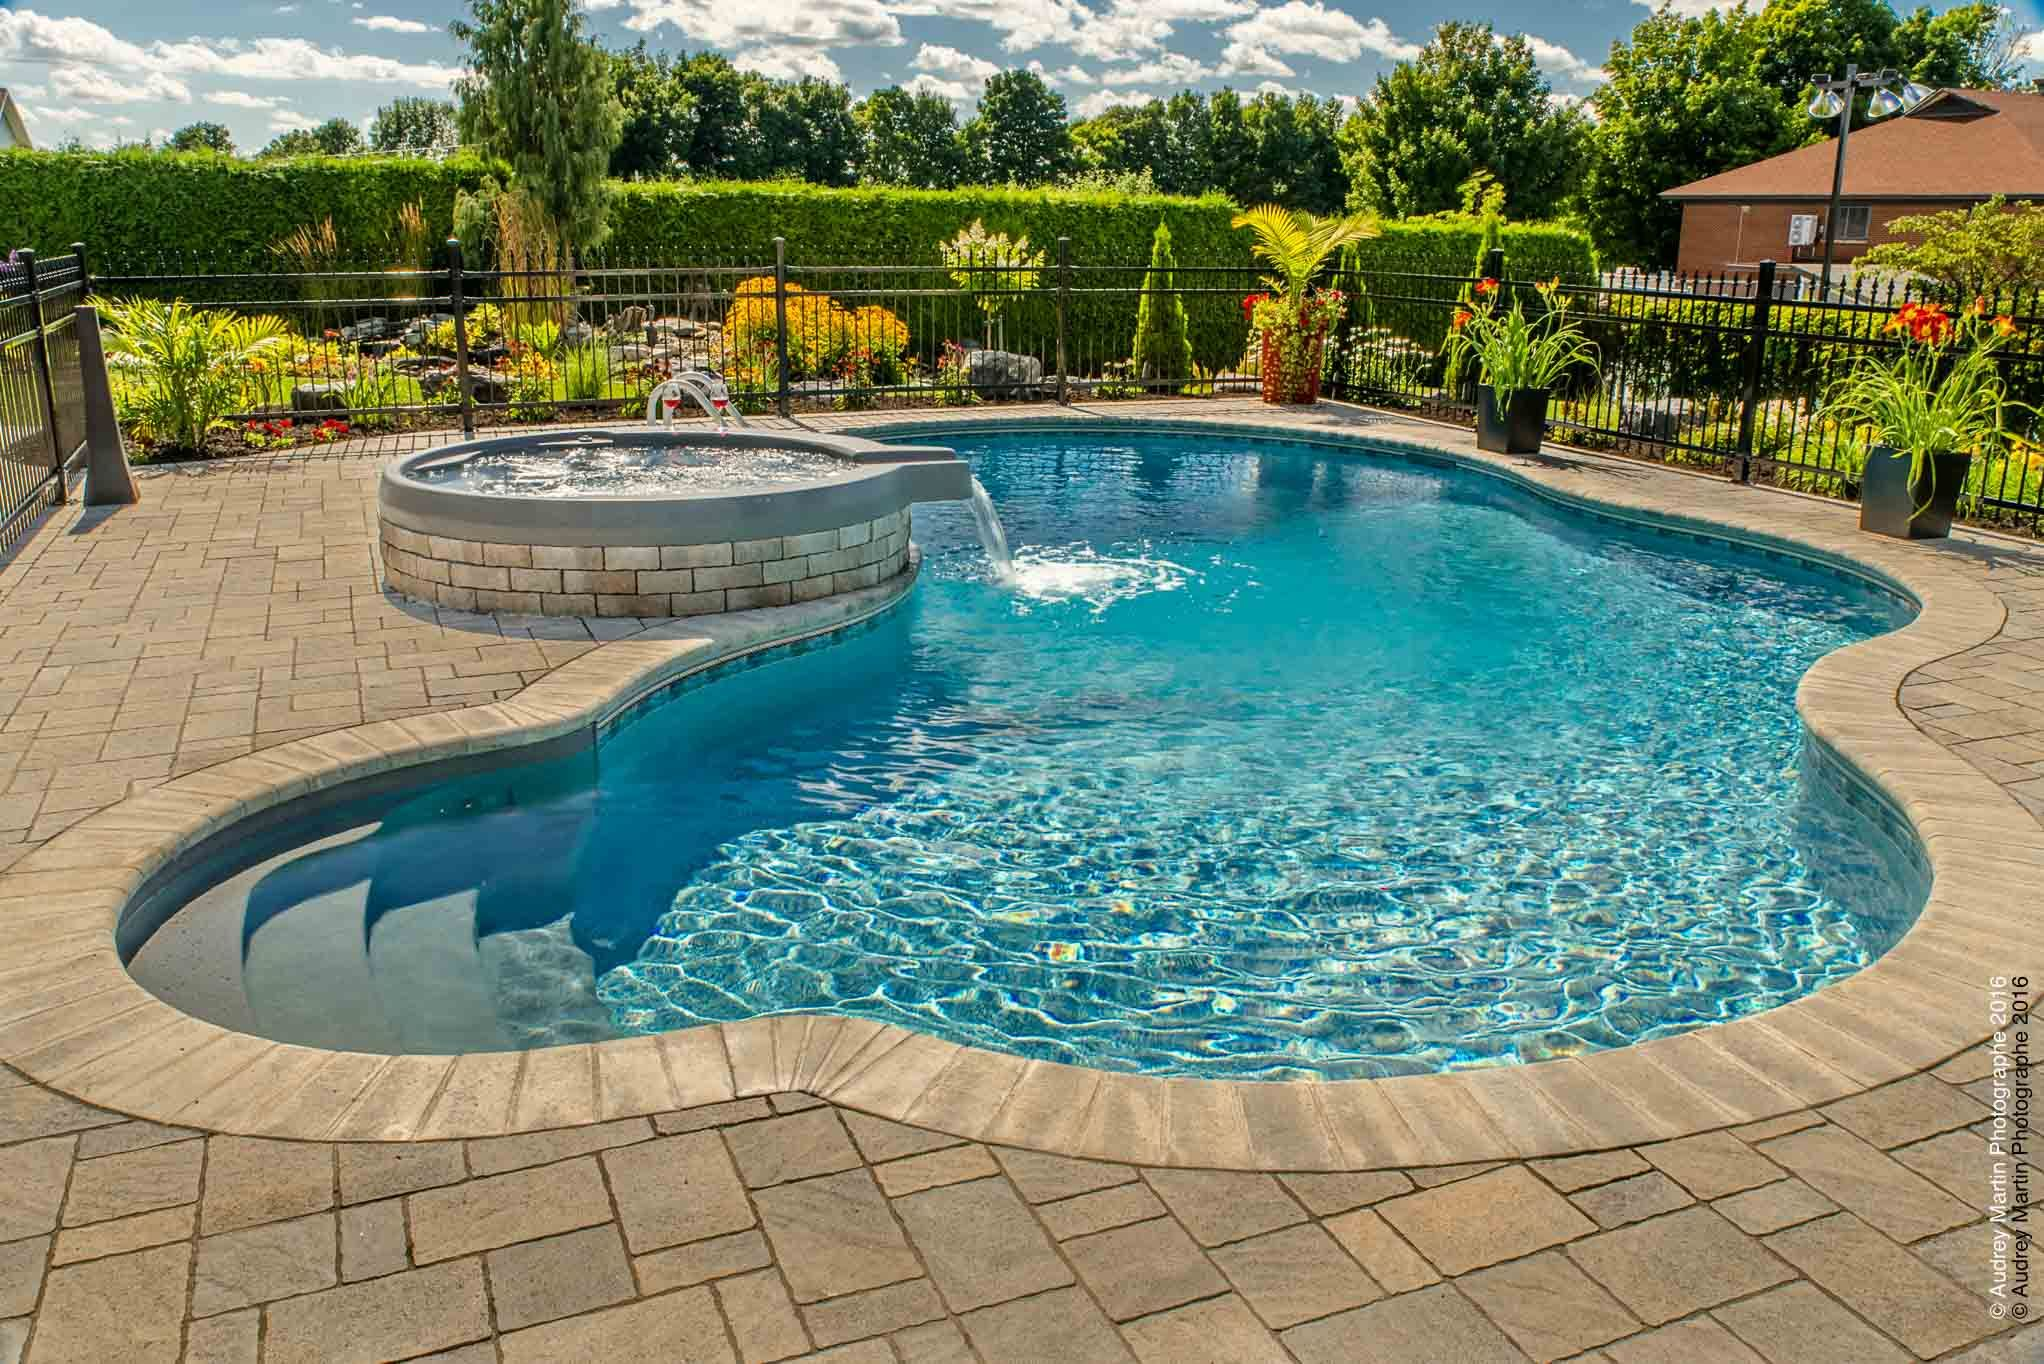 Piscine Creusee Spa Deversent Zone Foyer Cloture Pave Amenagement Paysager Galerie Swimming Pool House Gunite Pool Cool Swimming Pools